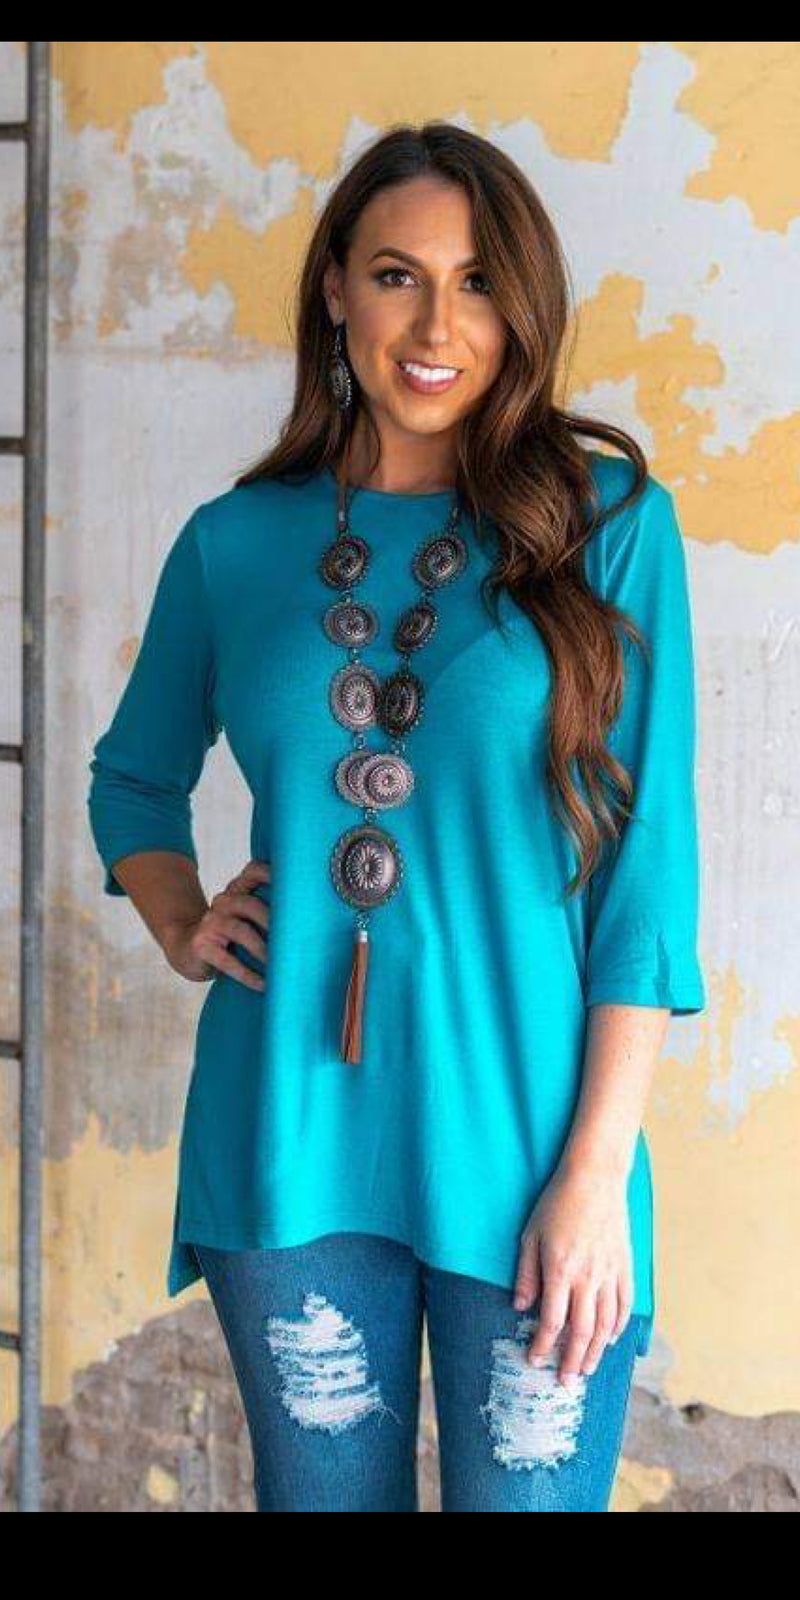 Tesla Turquoise Top - Also in Plus Size